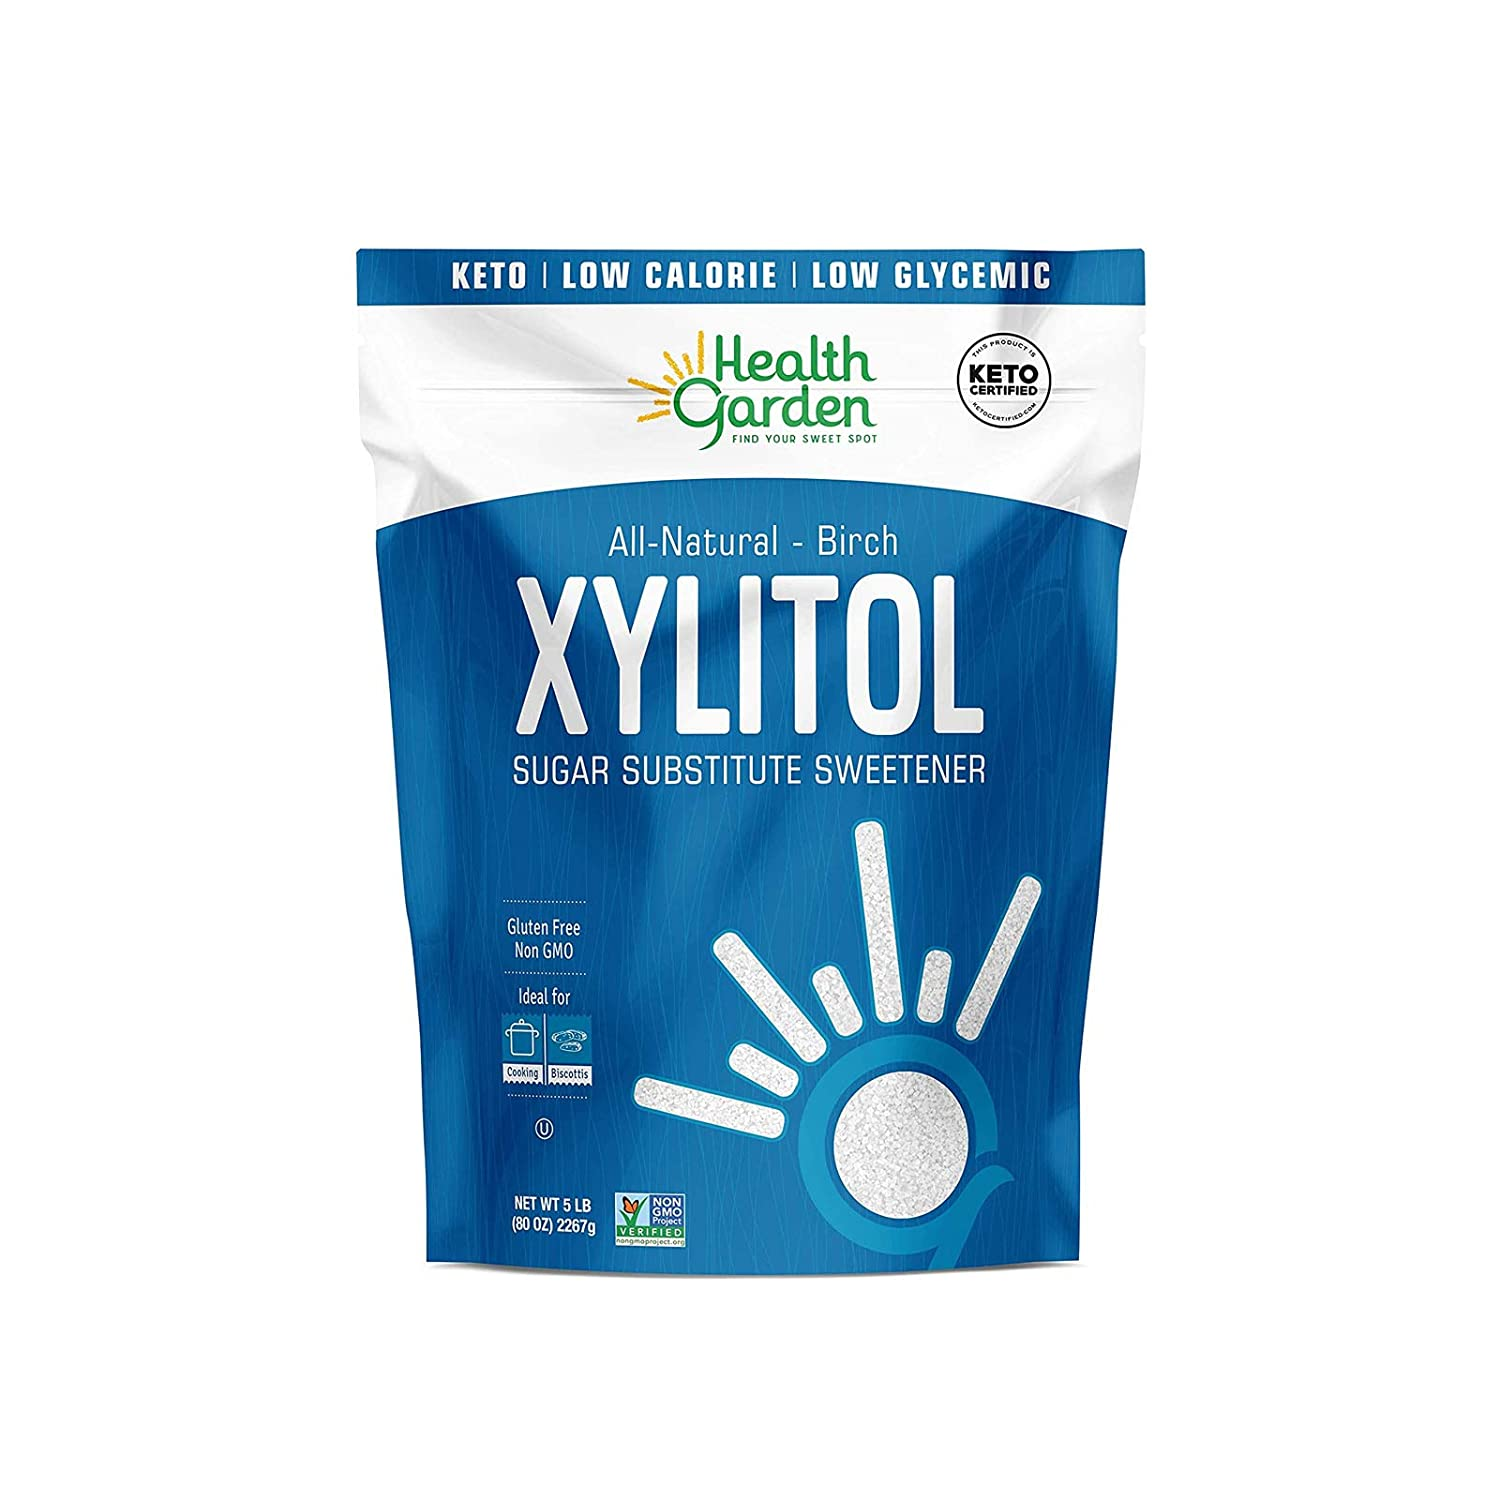 Health Garden Birch Xylitol Sweetener - Non GMO - Kosher - Made in the U.S.A. - Keto Friendly 5 LB ( Pack of 2 )